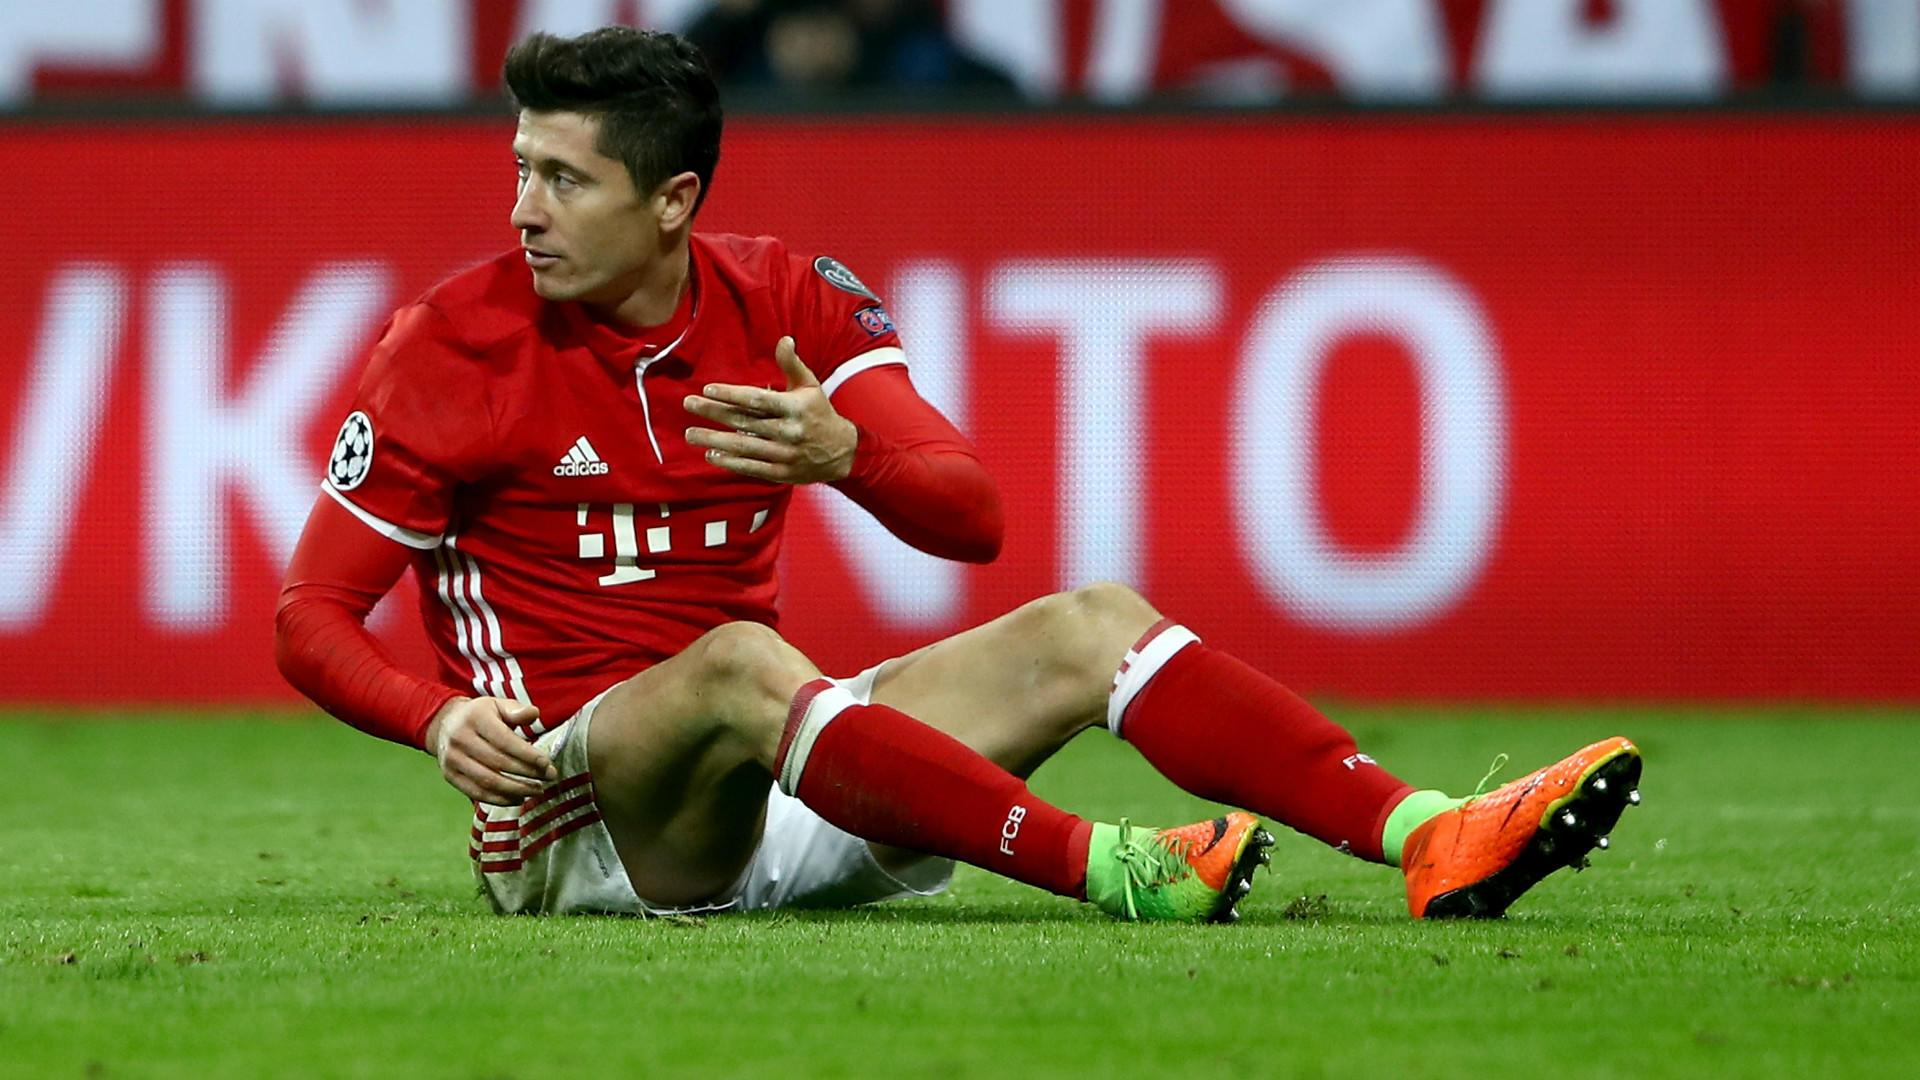 Bayern faces tough task to beat Real Madrid at Bernabeu